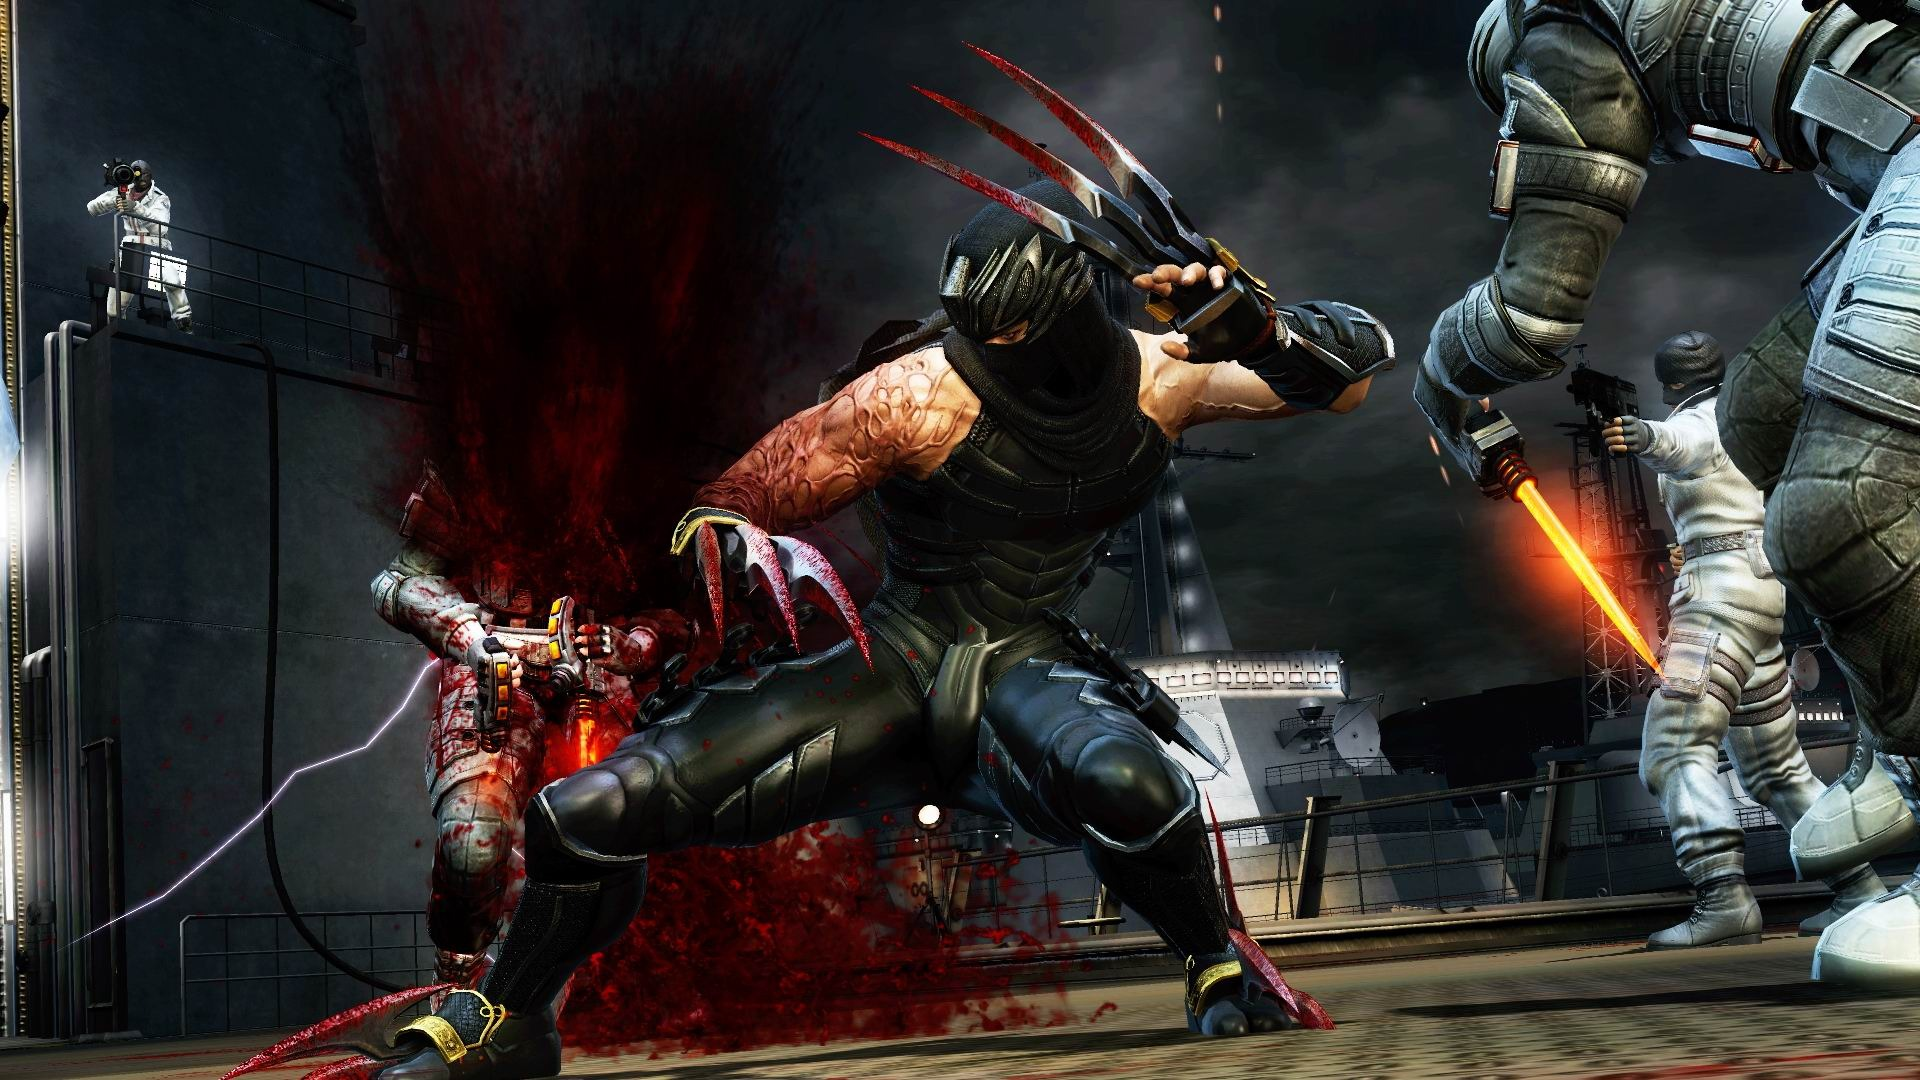 ninja gaiden 3 wallpaper hd